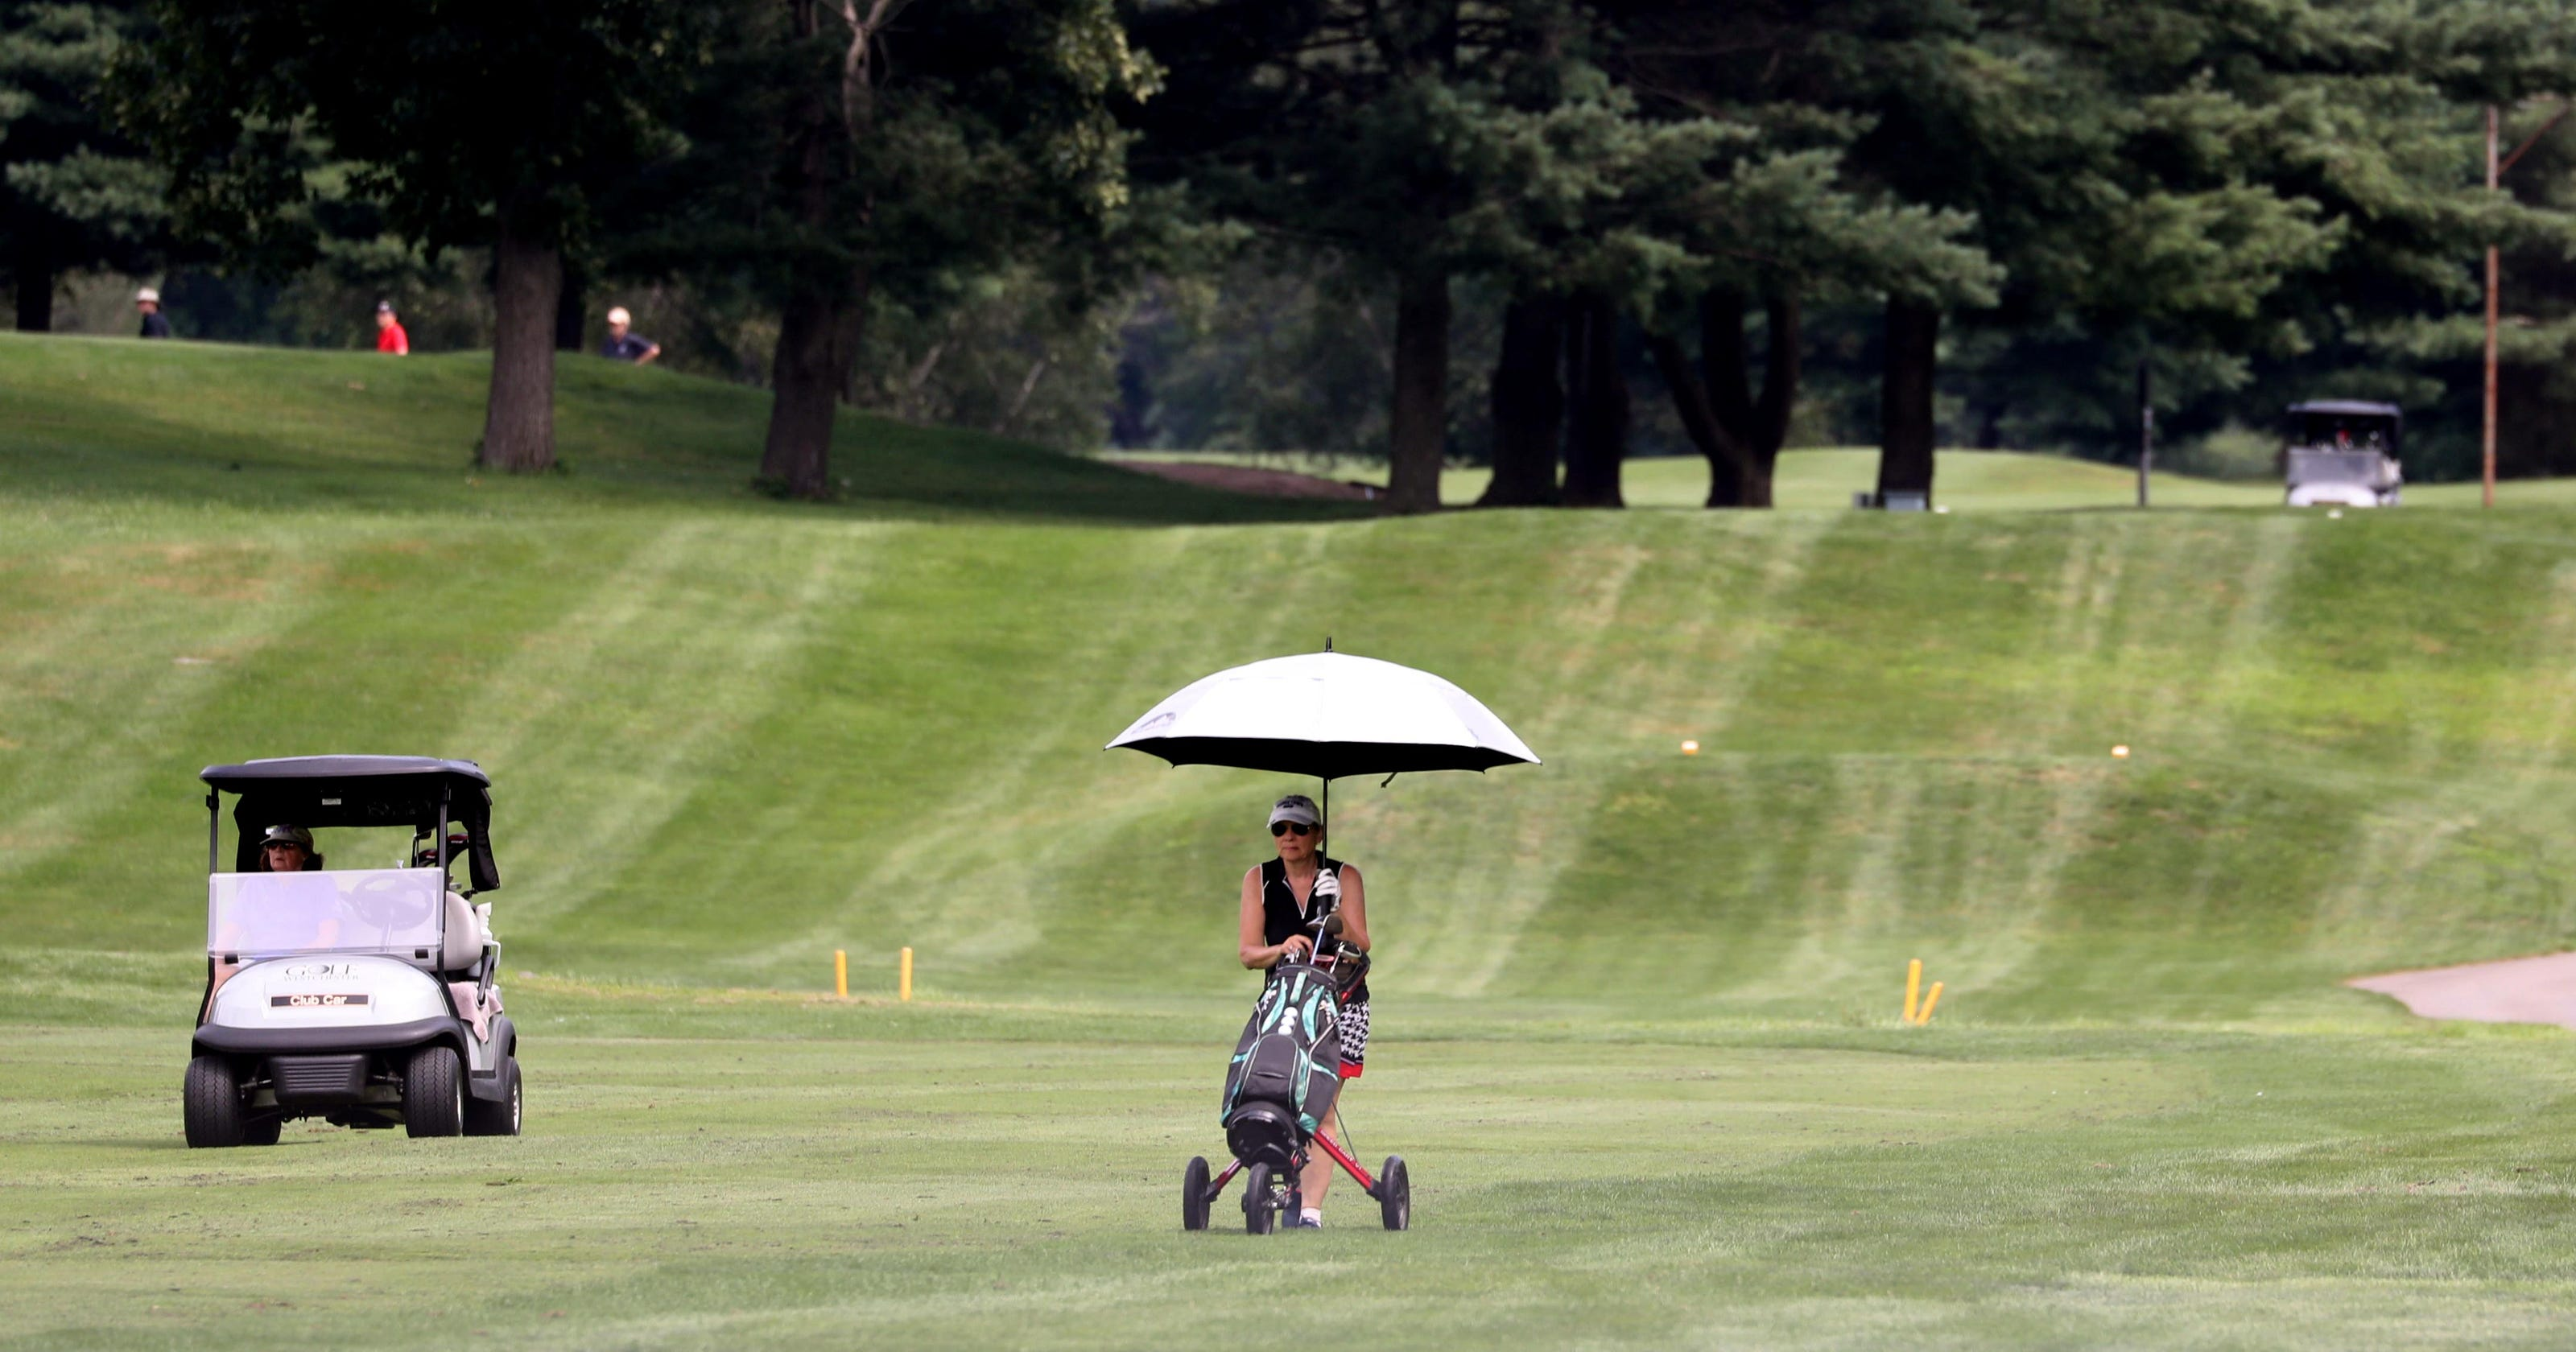 Golf: A dry summer allowing Westchester courses to absorb rain on sidewalk width, driveway width, golf cart with spotlight, golf cart alignment, golf cart injuries, golf cart wheels, golf cart paver, golf cart striping, golf cart themes, golf cart safety, golf cart trails,